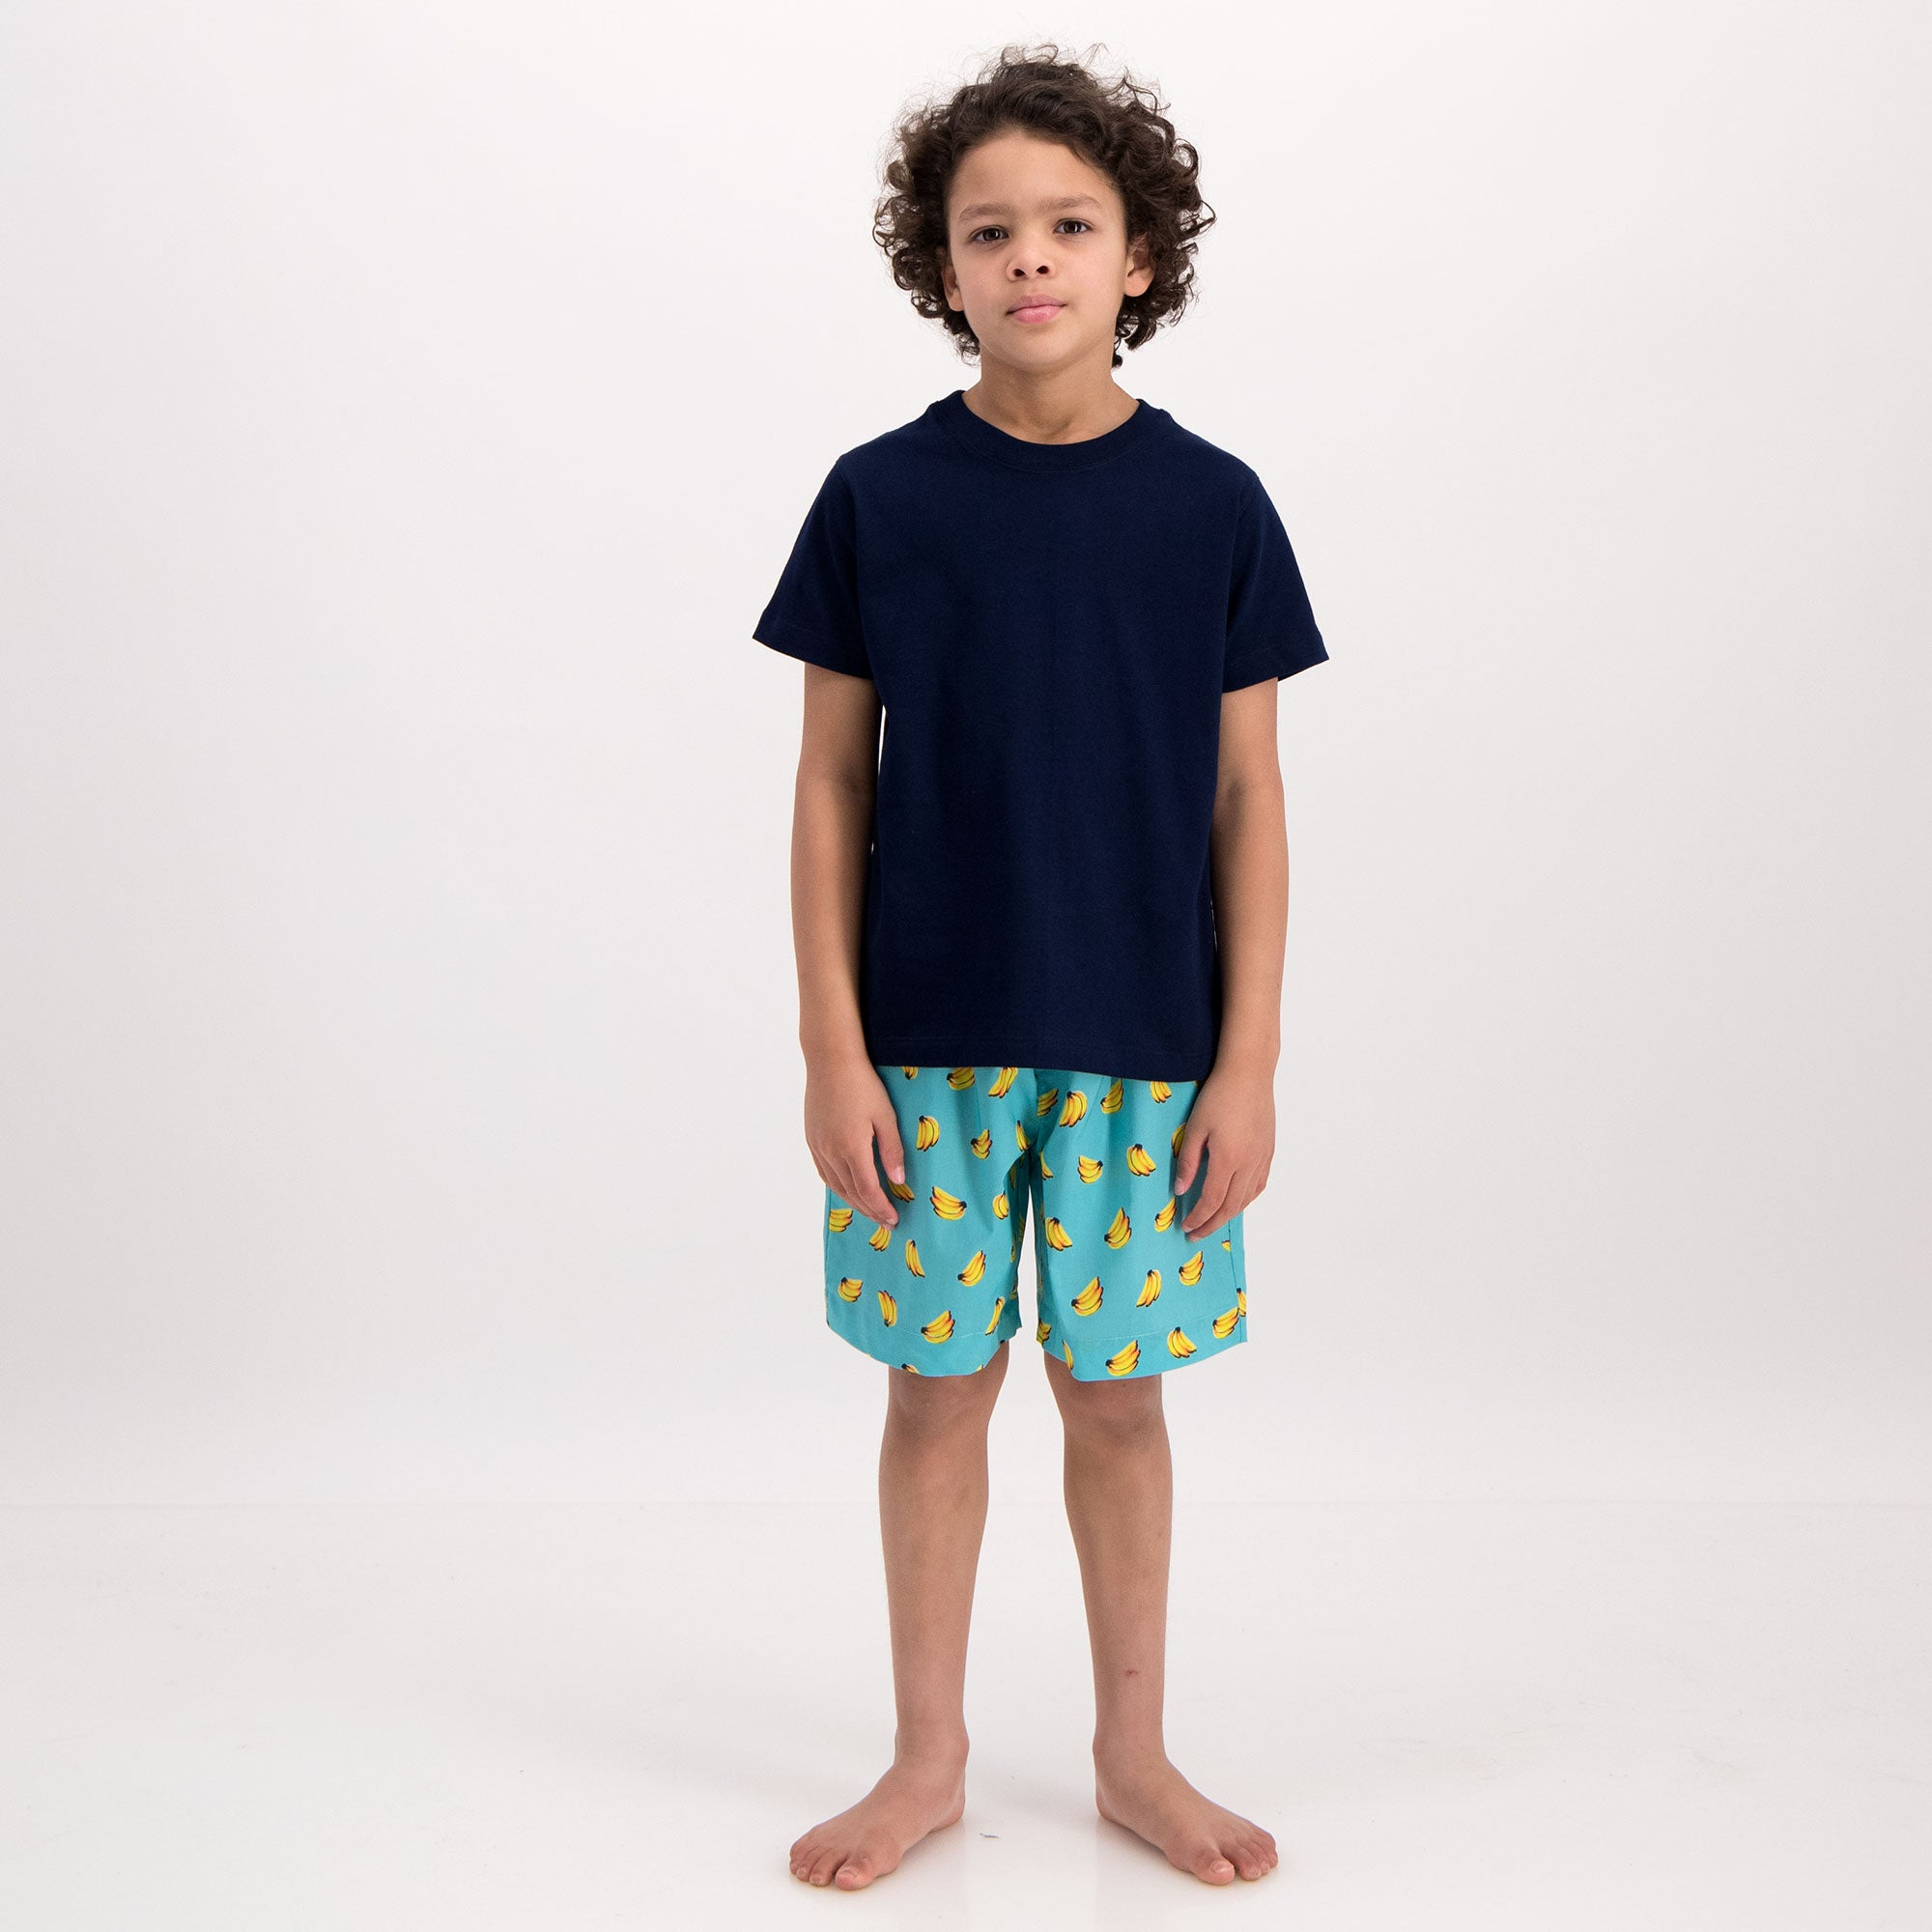 Boys Lounge Shorts Bananas - Woodstock Laundry